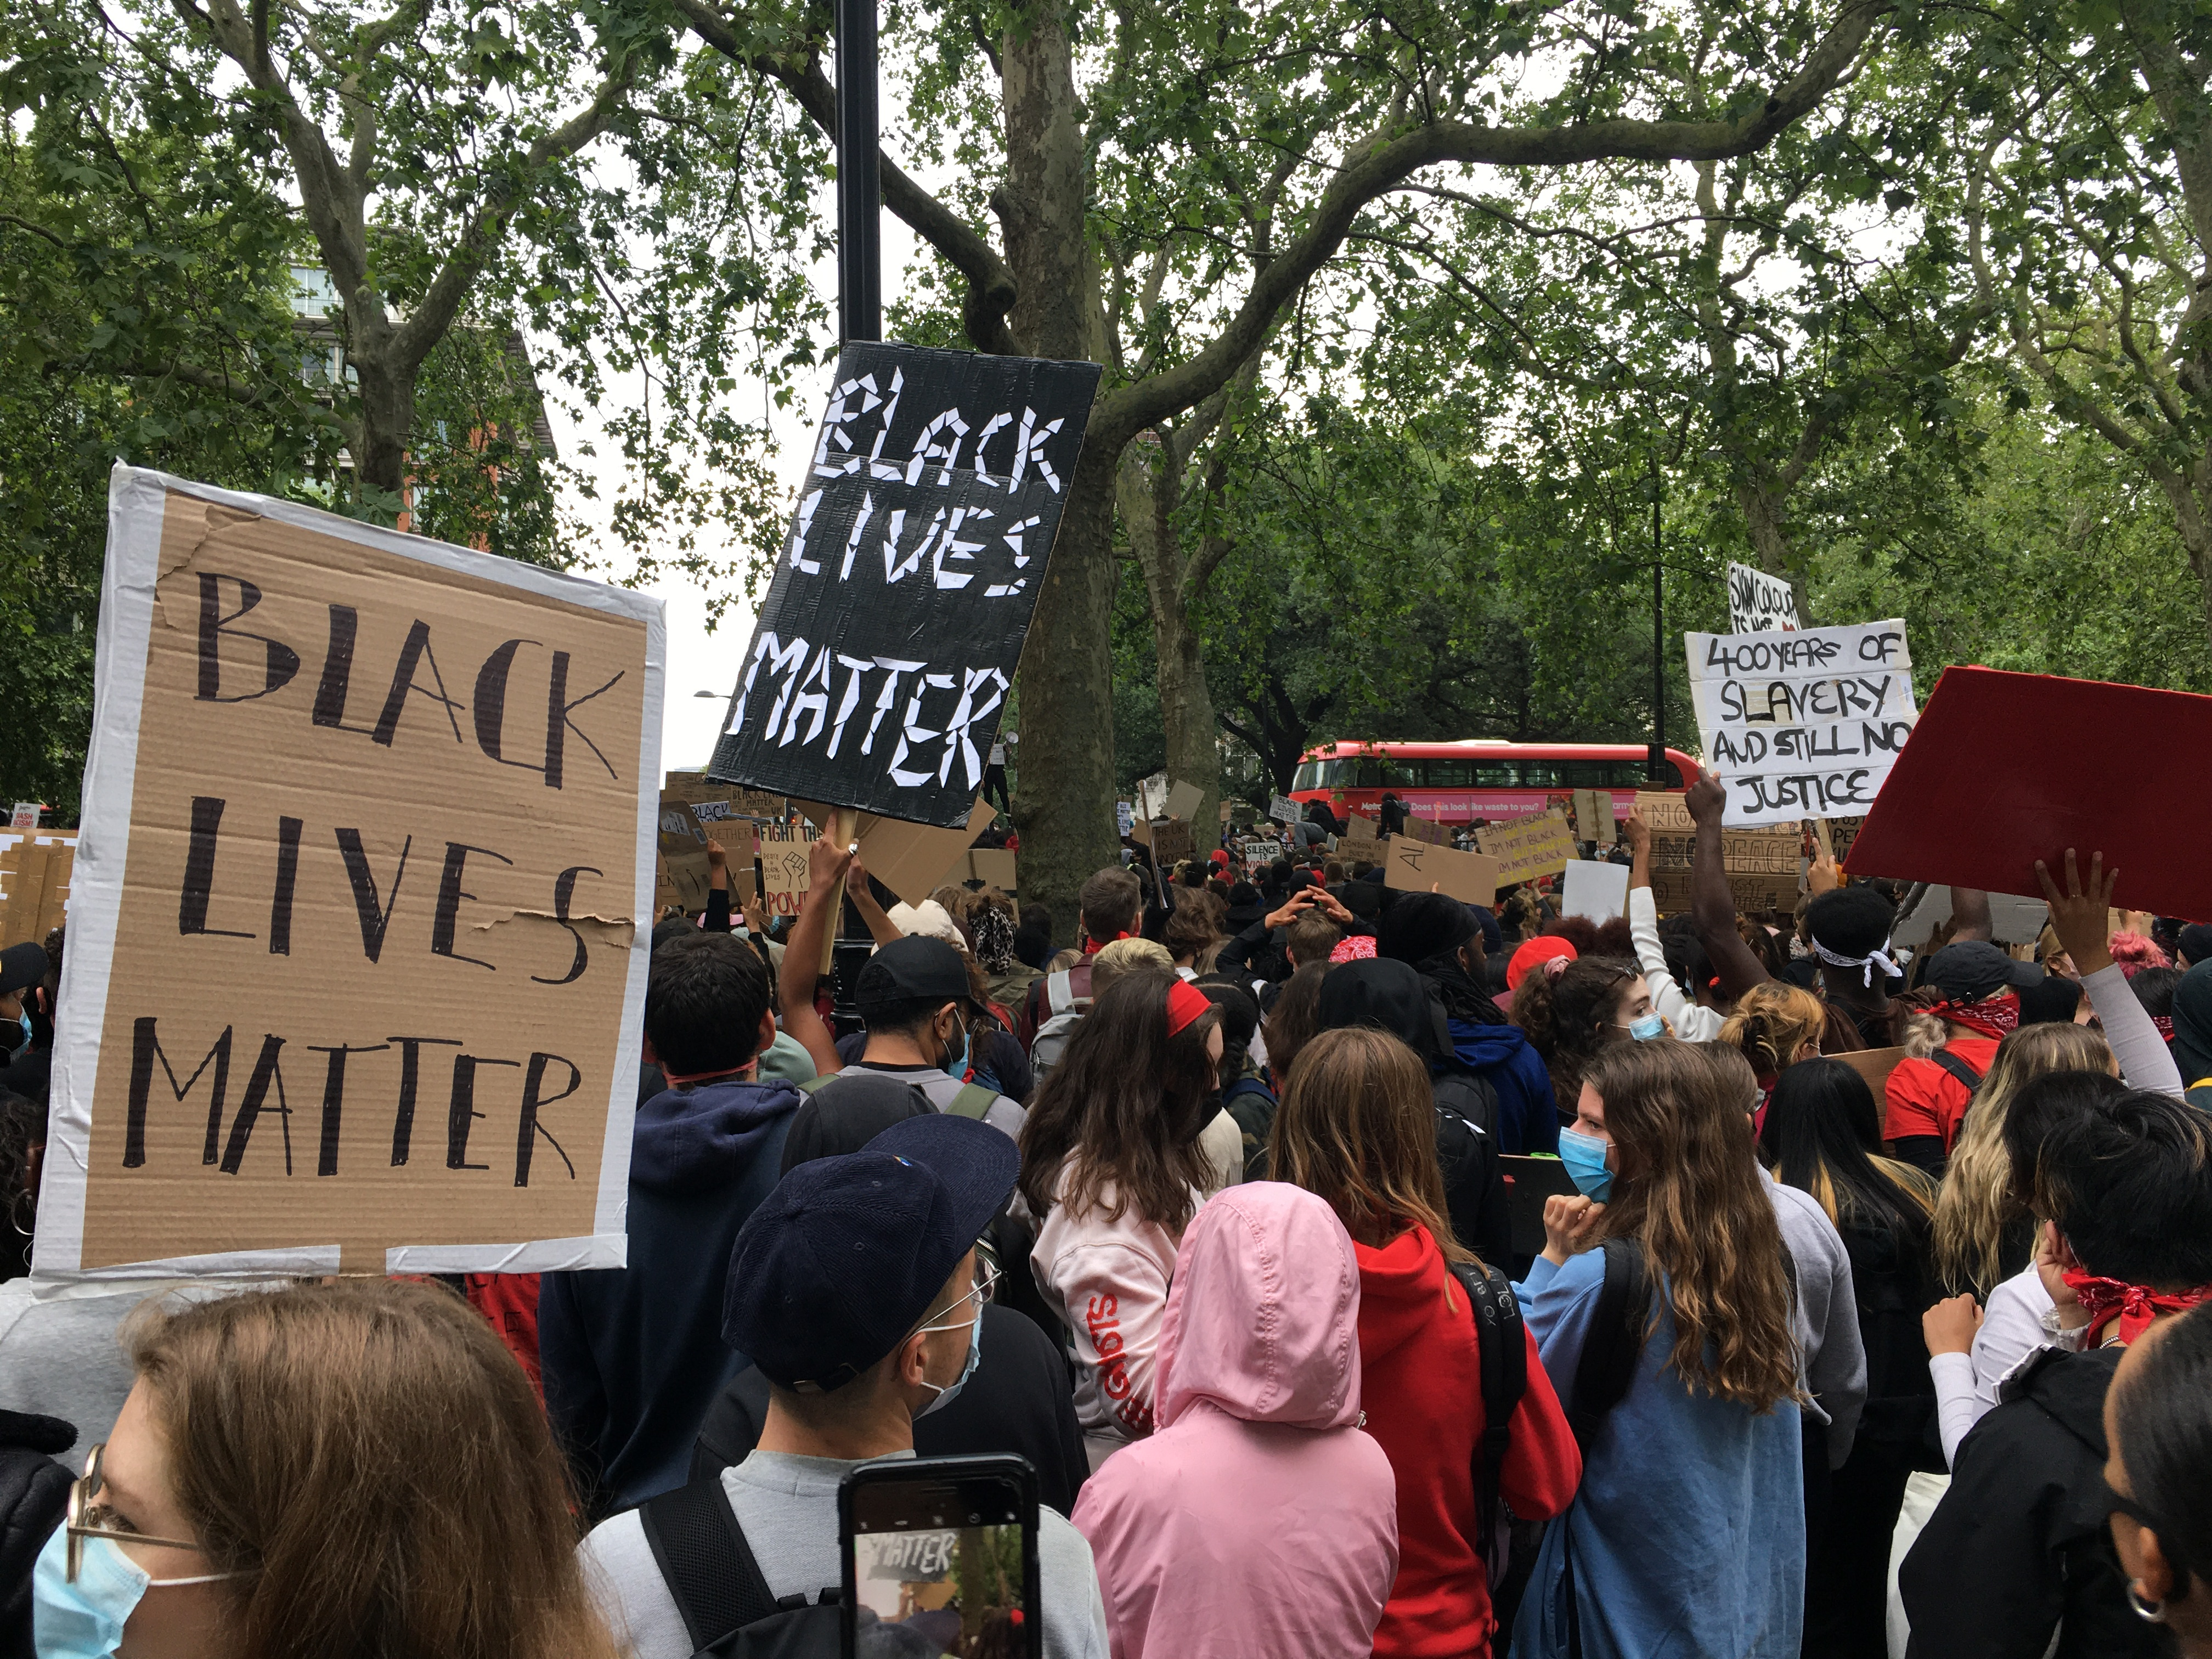 https://commons.wikimedia.org/wiki/File:Black_Lives_Matter,_Hyde_Park_London_protest_3.6.27.jpg